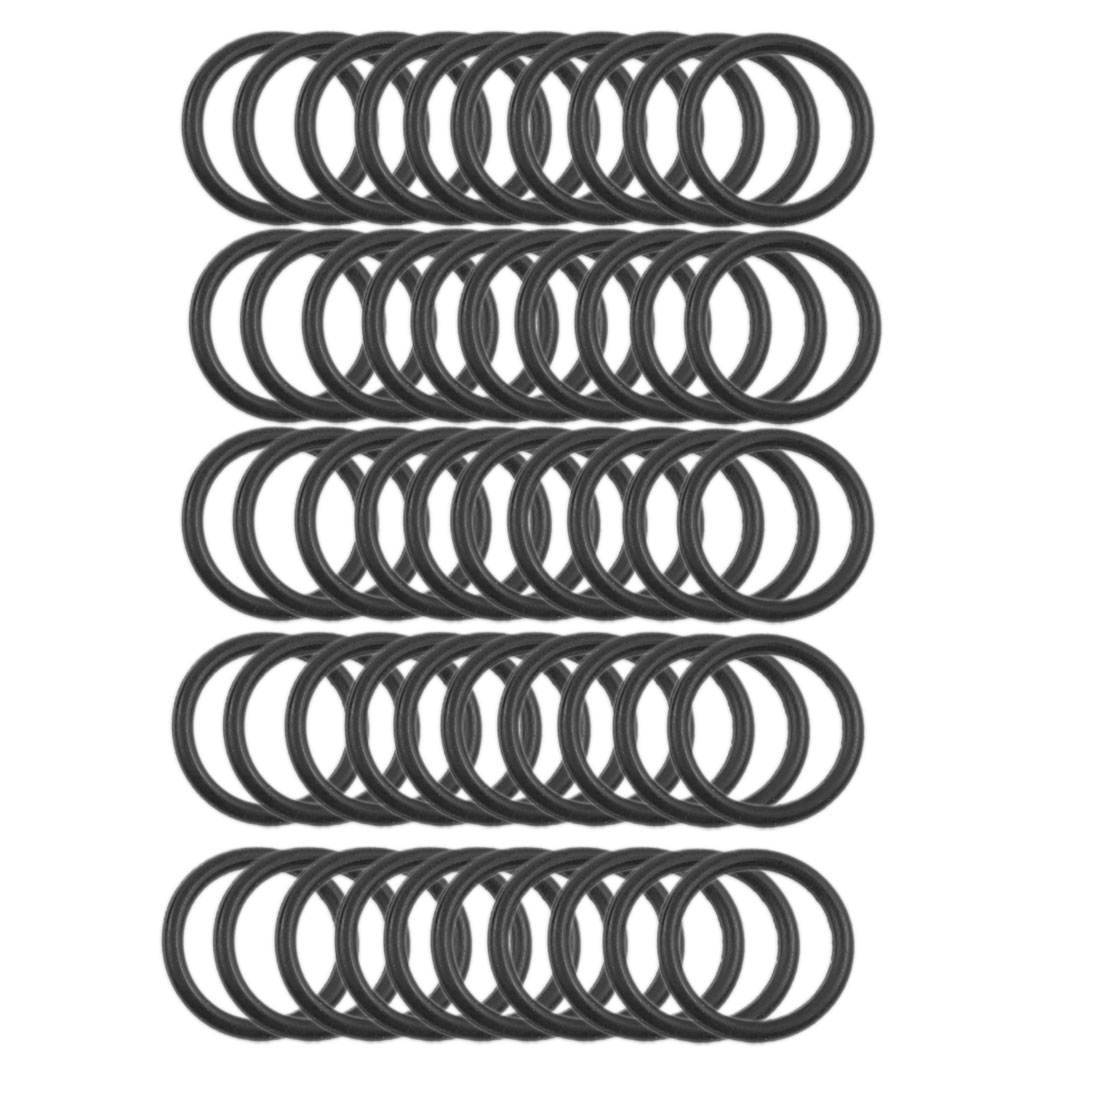 50 Pcs 18mm x 2mm Automobile Sealing NBR O Rings Gaskets Washers